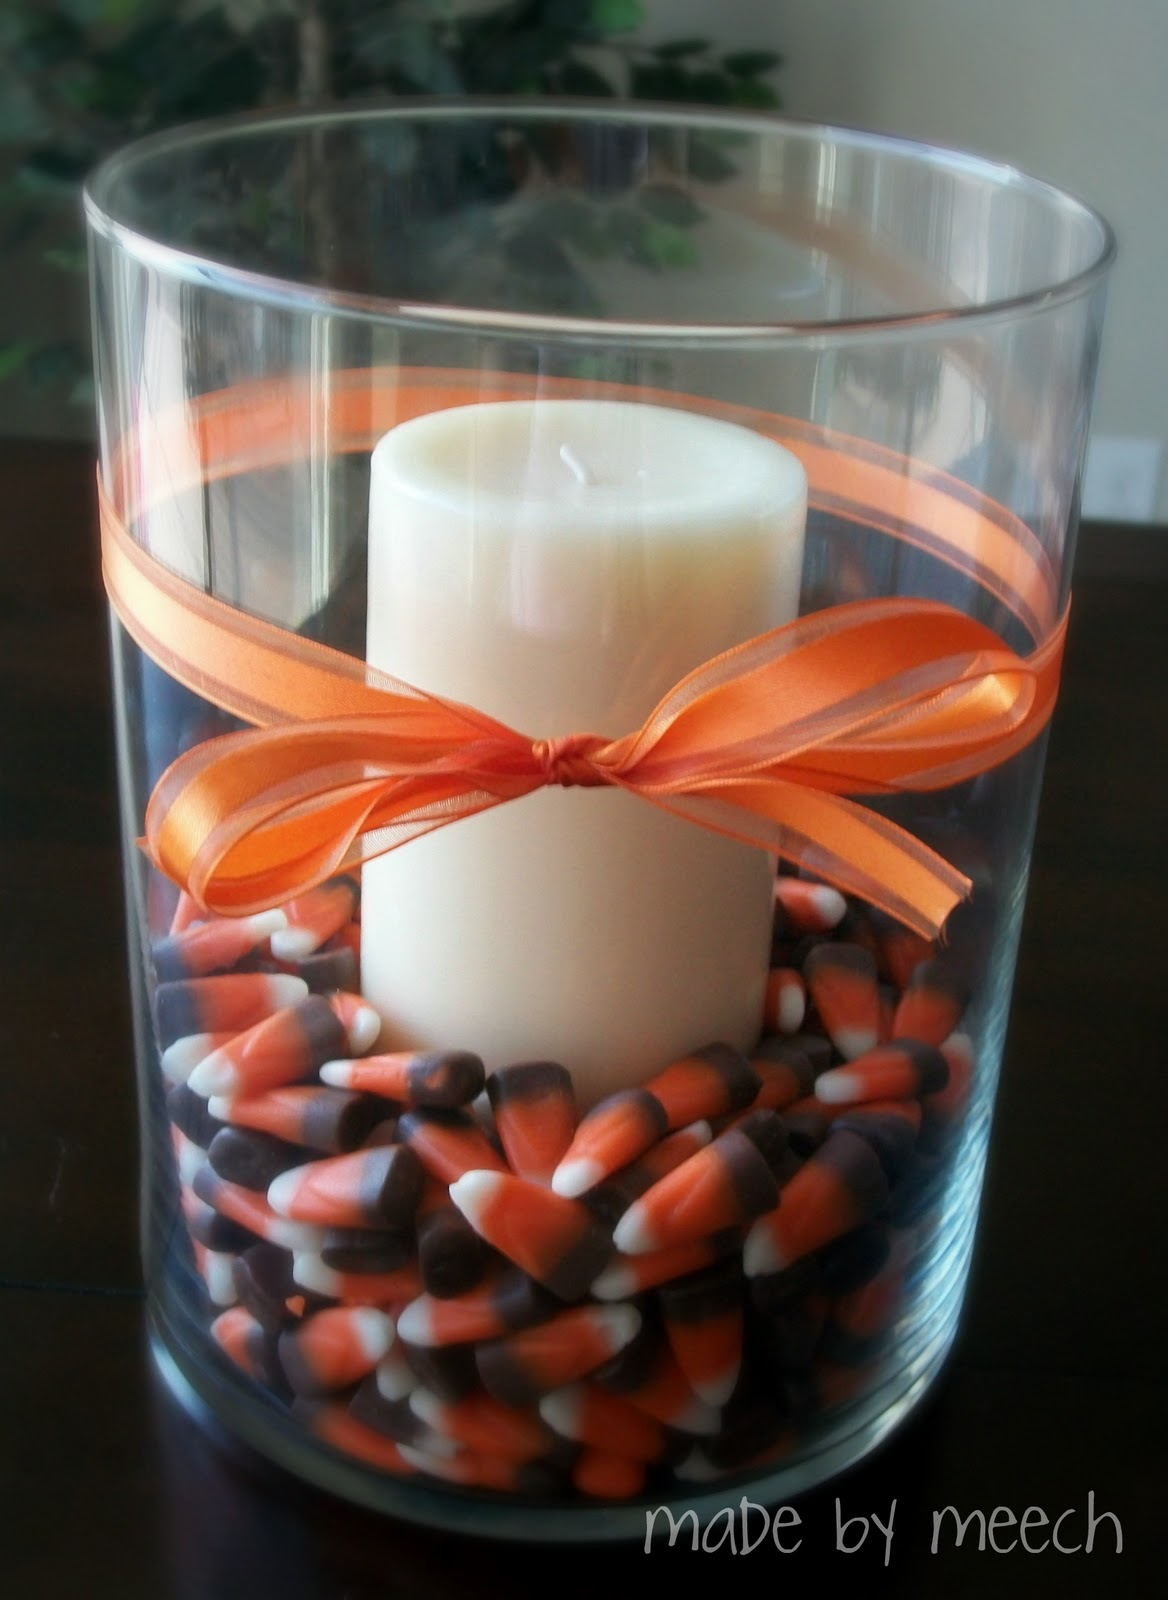 Made by meech candy corn centerpiece